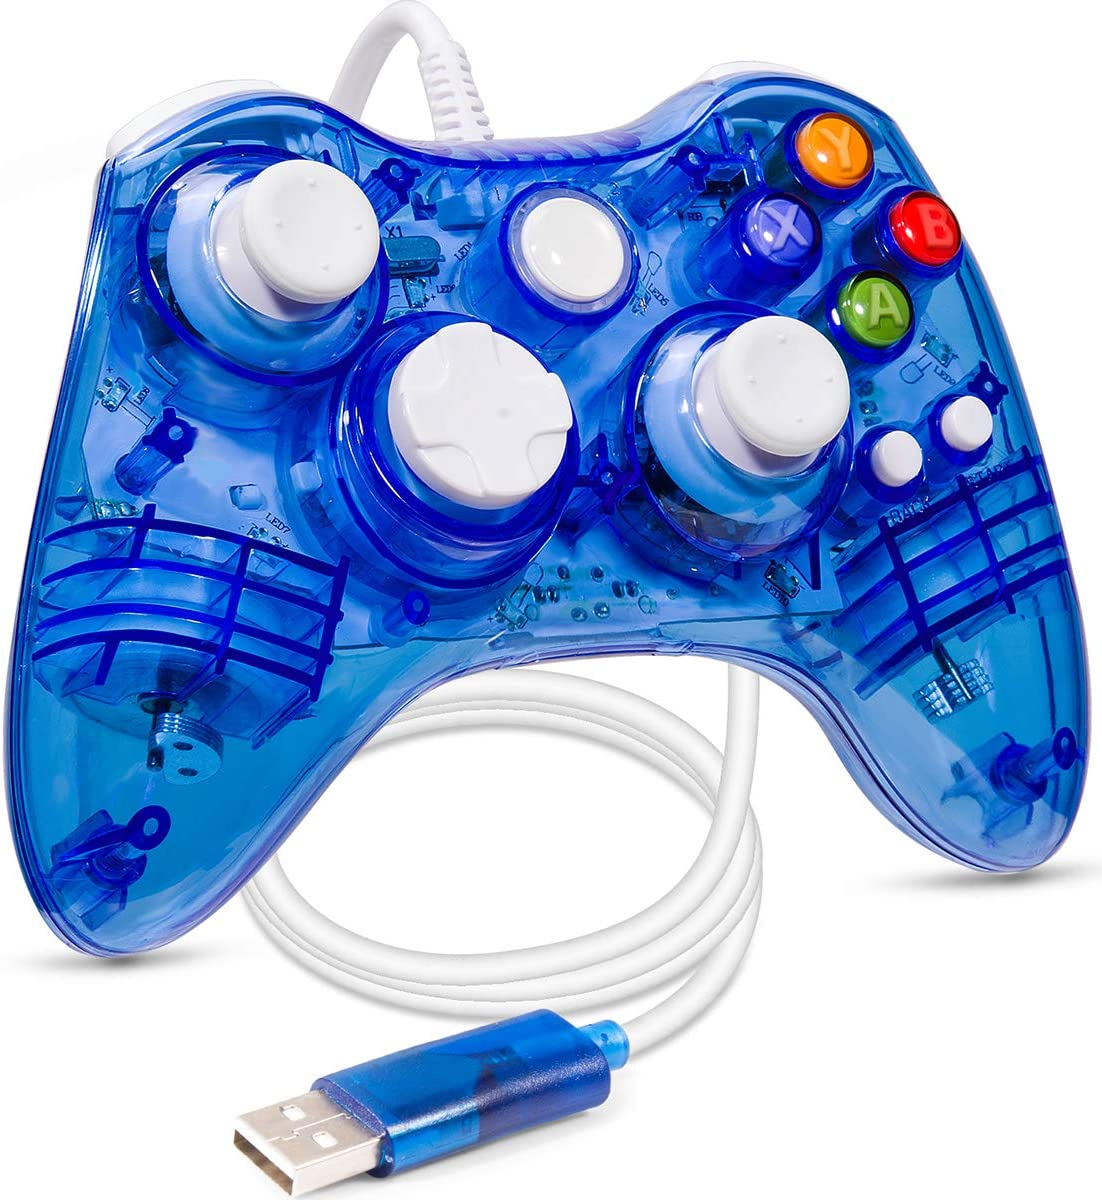 LUXMO PREMIUM Wired Xbox 360 Contro SEAL lowest price limited product Controller xbox360 USB